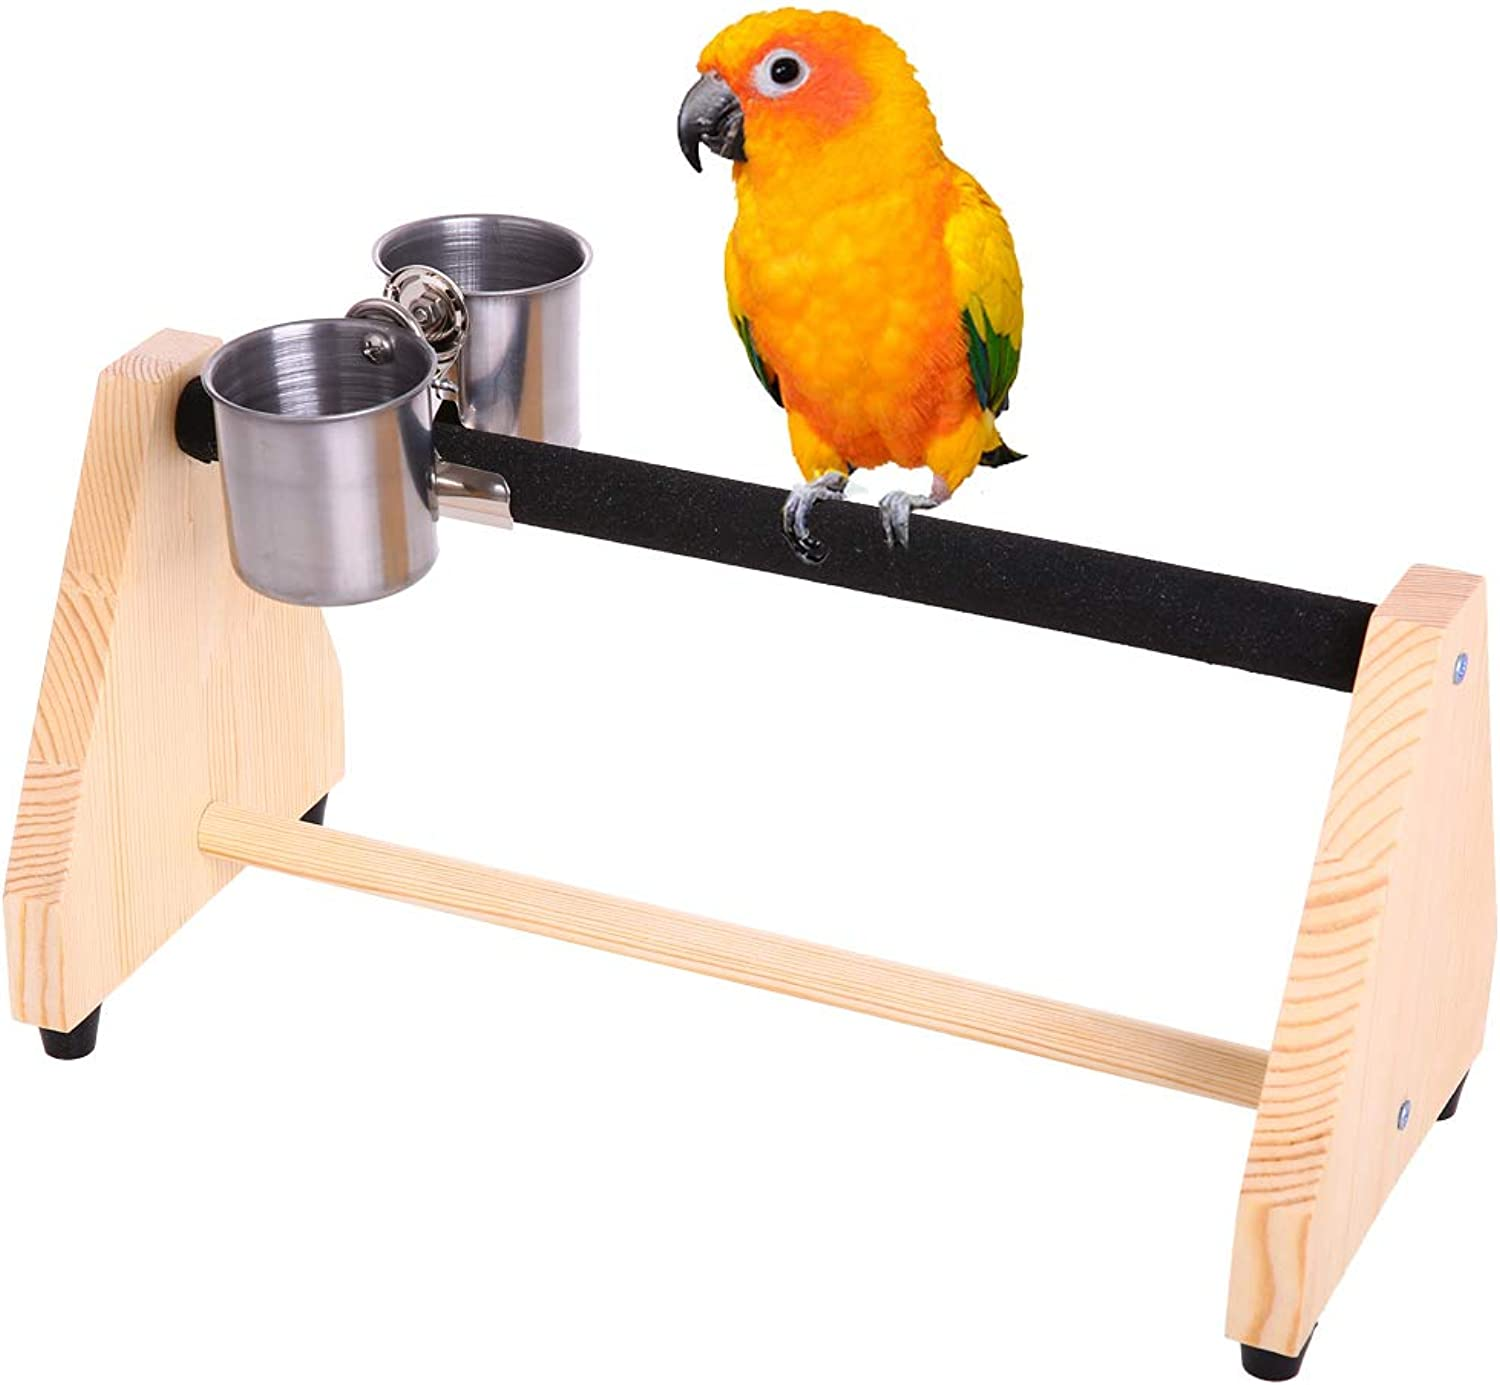 QBLEEV Parred Play Wood Stand Bird Grinding Perch Table Platform Birdcage Stands with Feeder Dish Cup Portable Table Playstand for Small Cockatiels, Conures, Parakeets, Finch